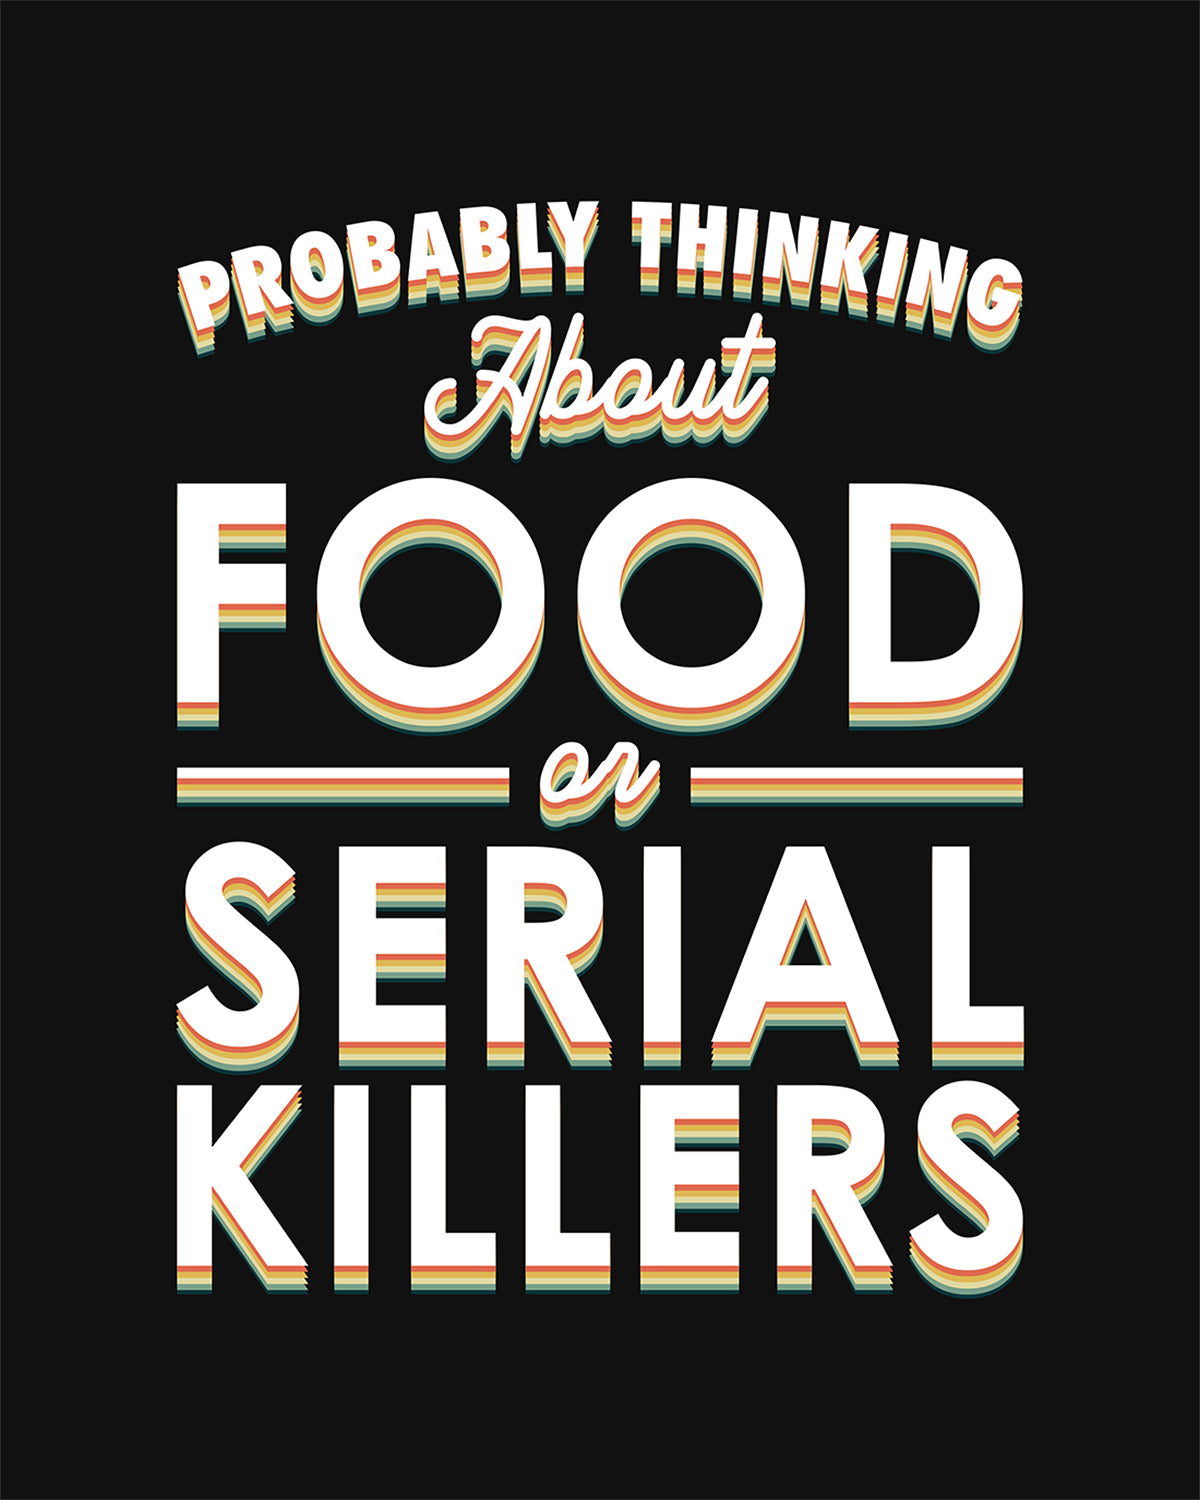 Probably Thinking About Food or Serial Killers - Wall Decor Art - Print, Poster & Canvas Sizes - Gift for Mom, Foodies, True Crime